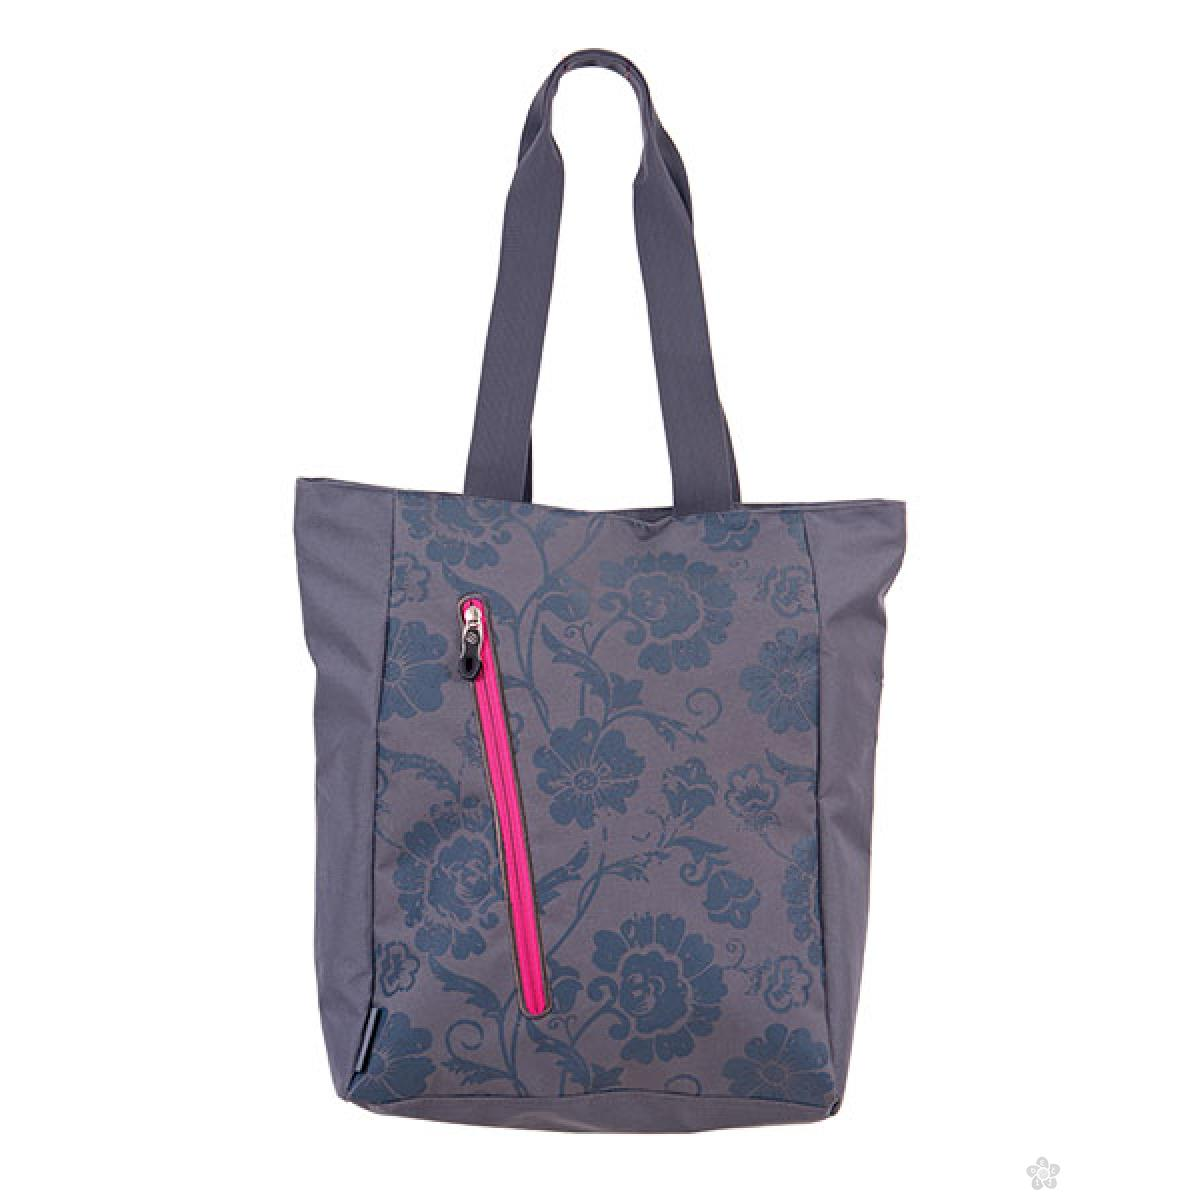 Shopping bag Cots Gray Flower